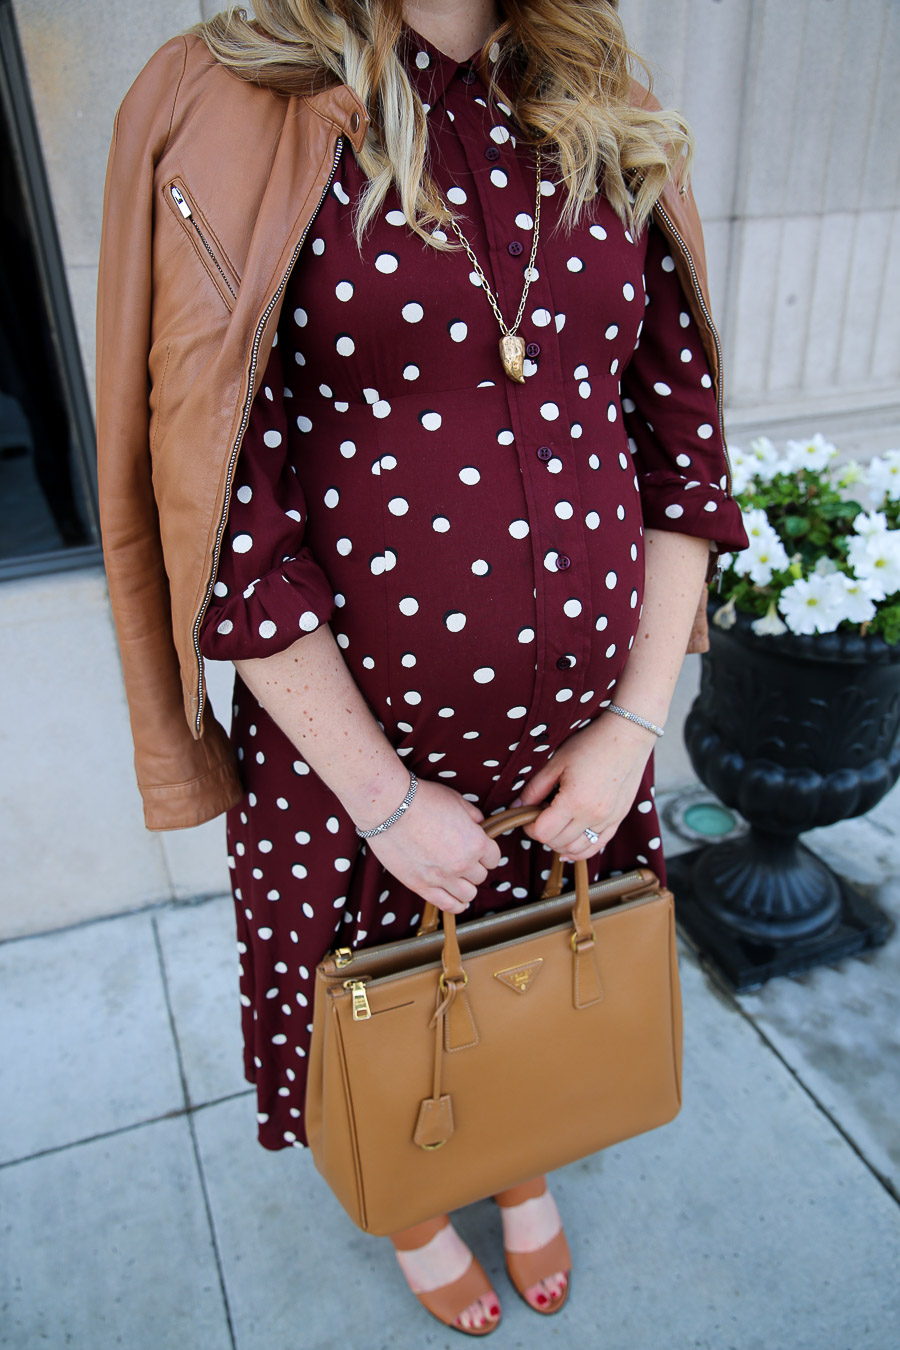 Stylish Maternity Work Clothes with Leather Jacket